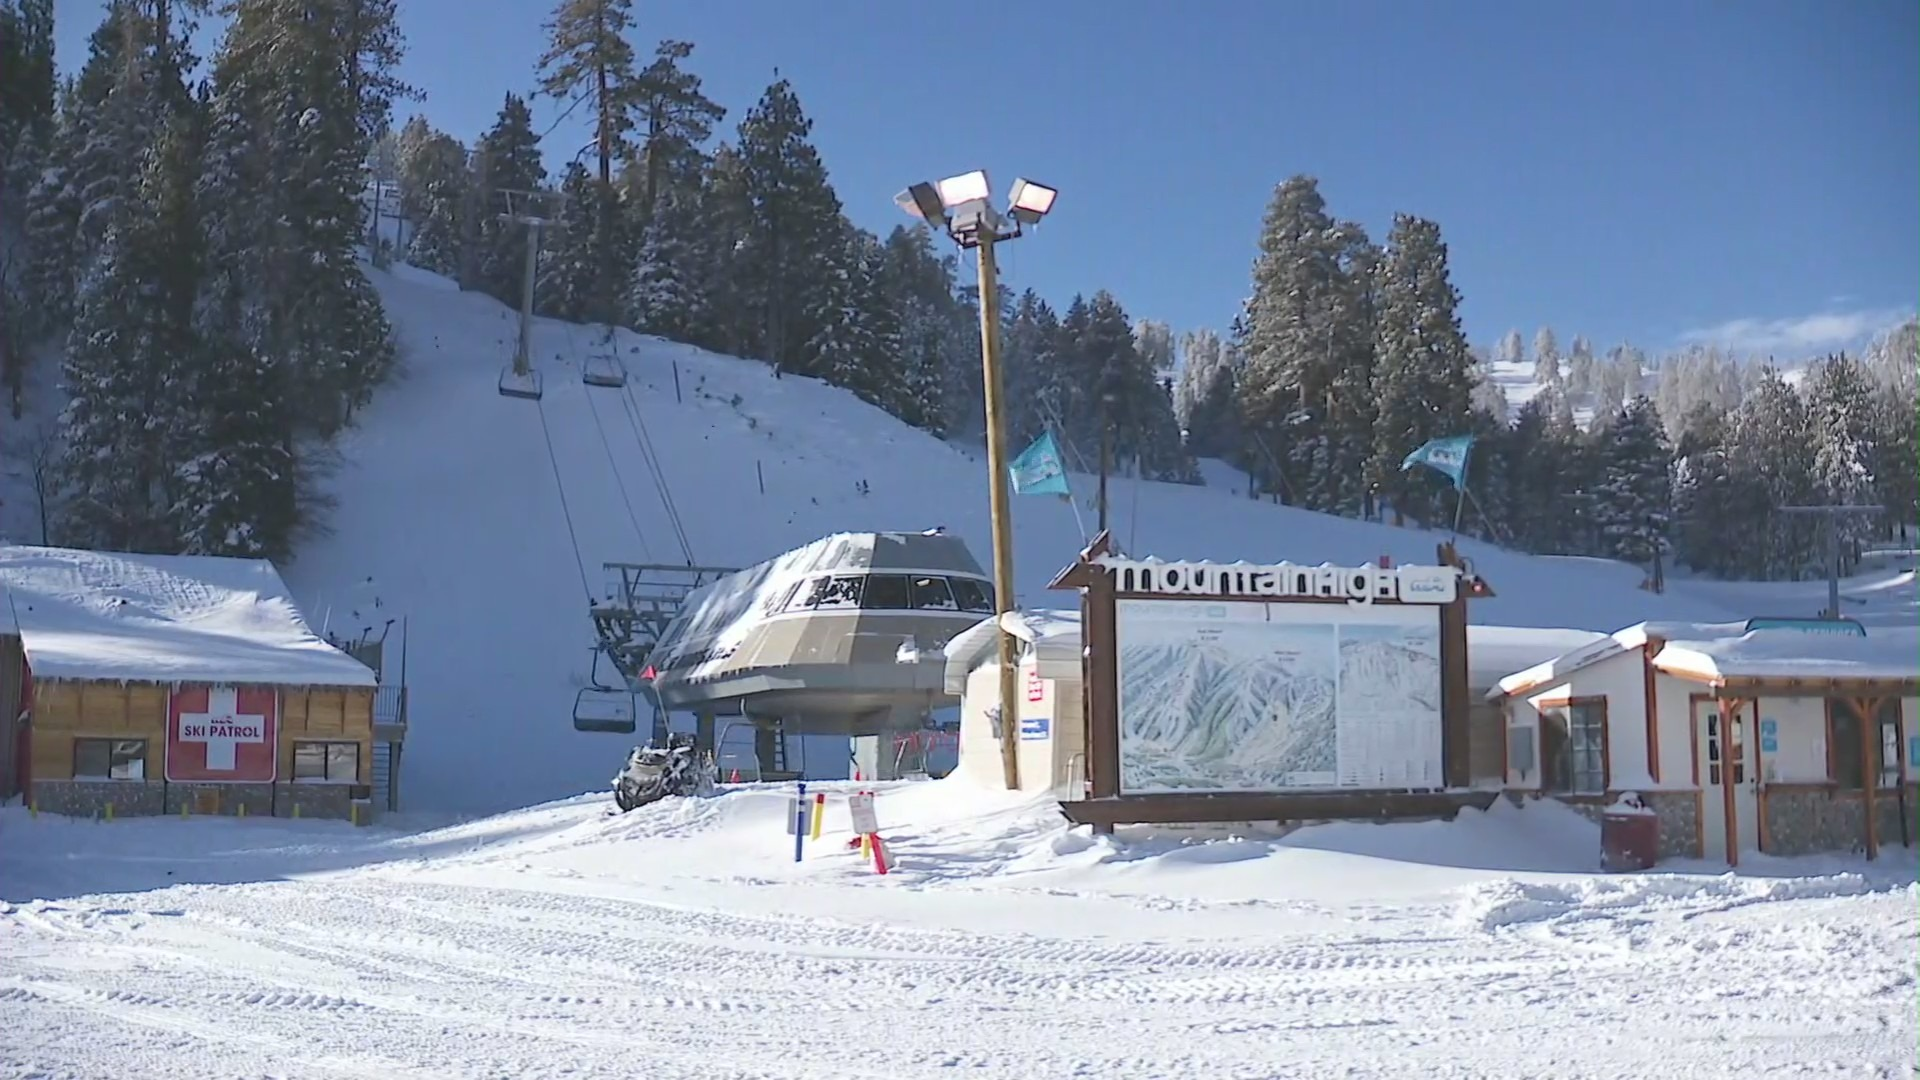 Mountain High resort in Wrightwood is seen on Jan. 25, 2021. (KTLA)